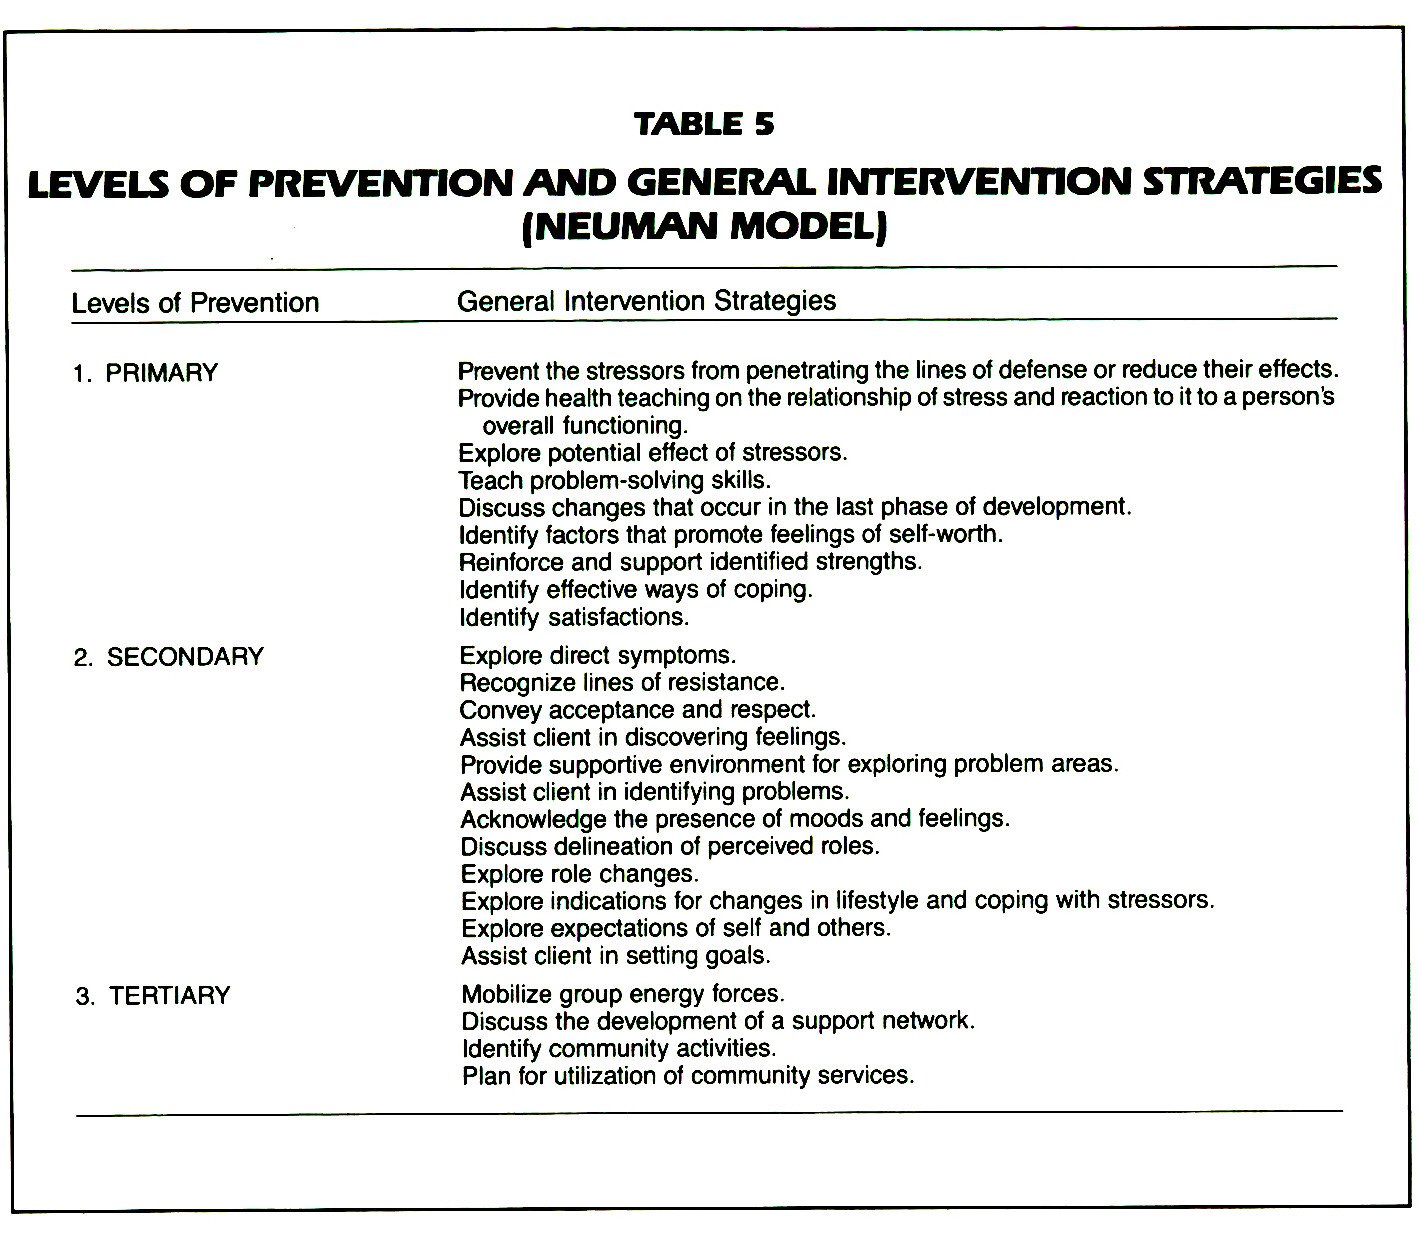 TABLES 5LEVELS OF PREVENTION AND GENERAL INTERVENTION STRATEGIES (NEUMAN MODEL)